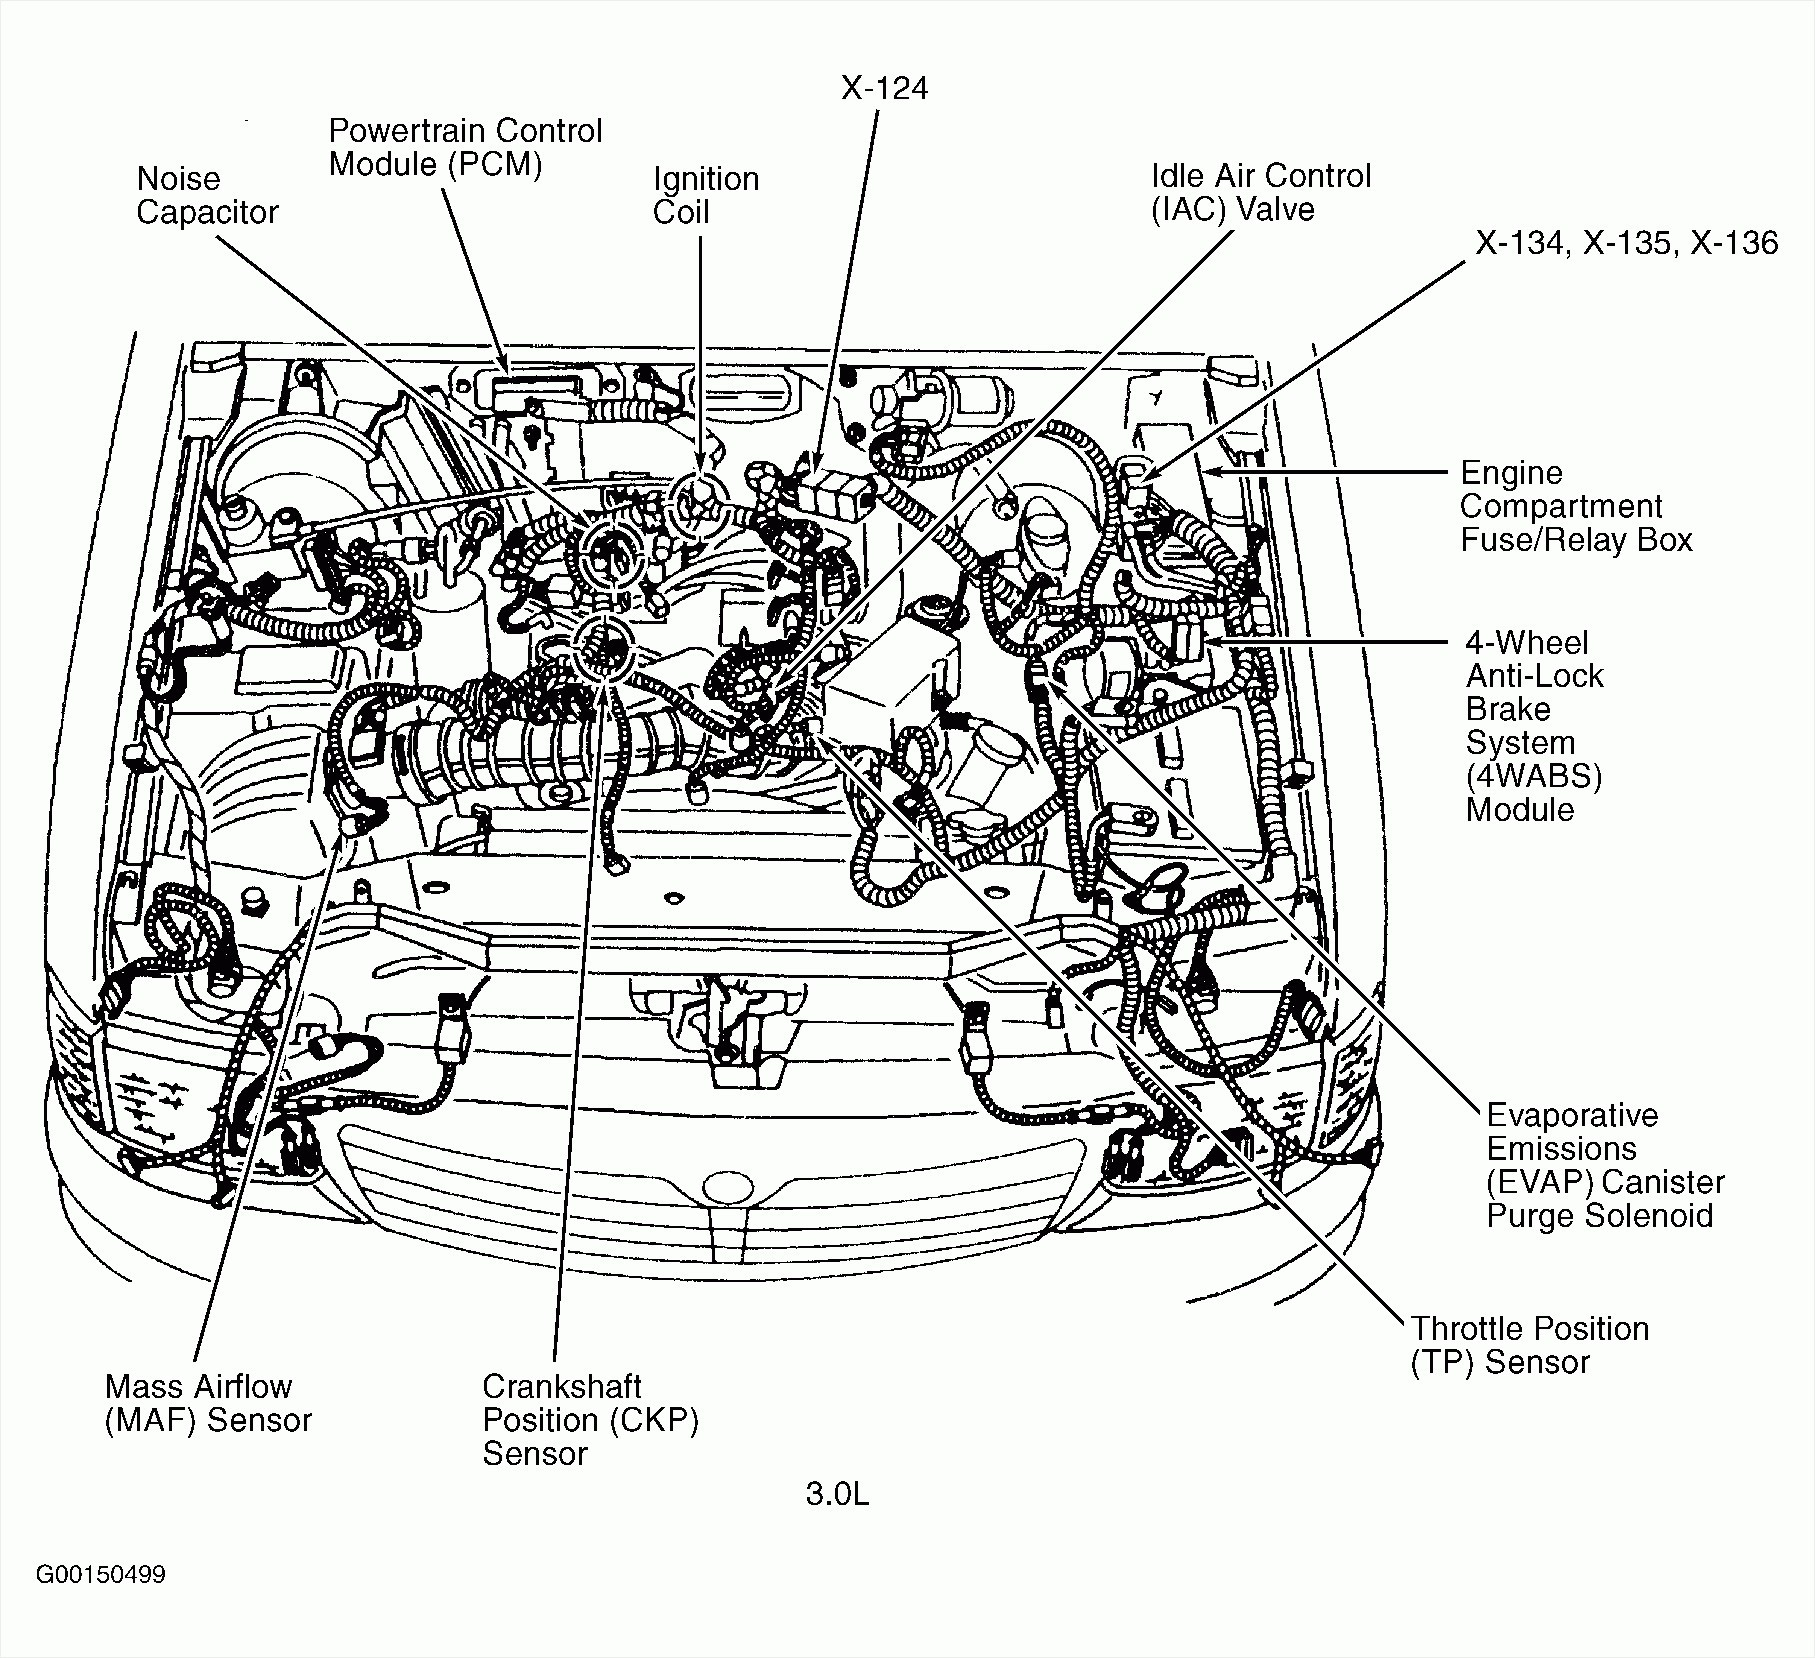 hight resolution of 2000 chevy blazer engine diagram wiring diagram expert 1997 chevy blazer engine diagram 1996 chevy s10